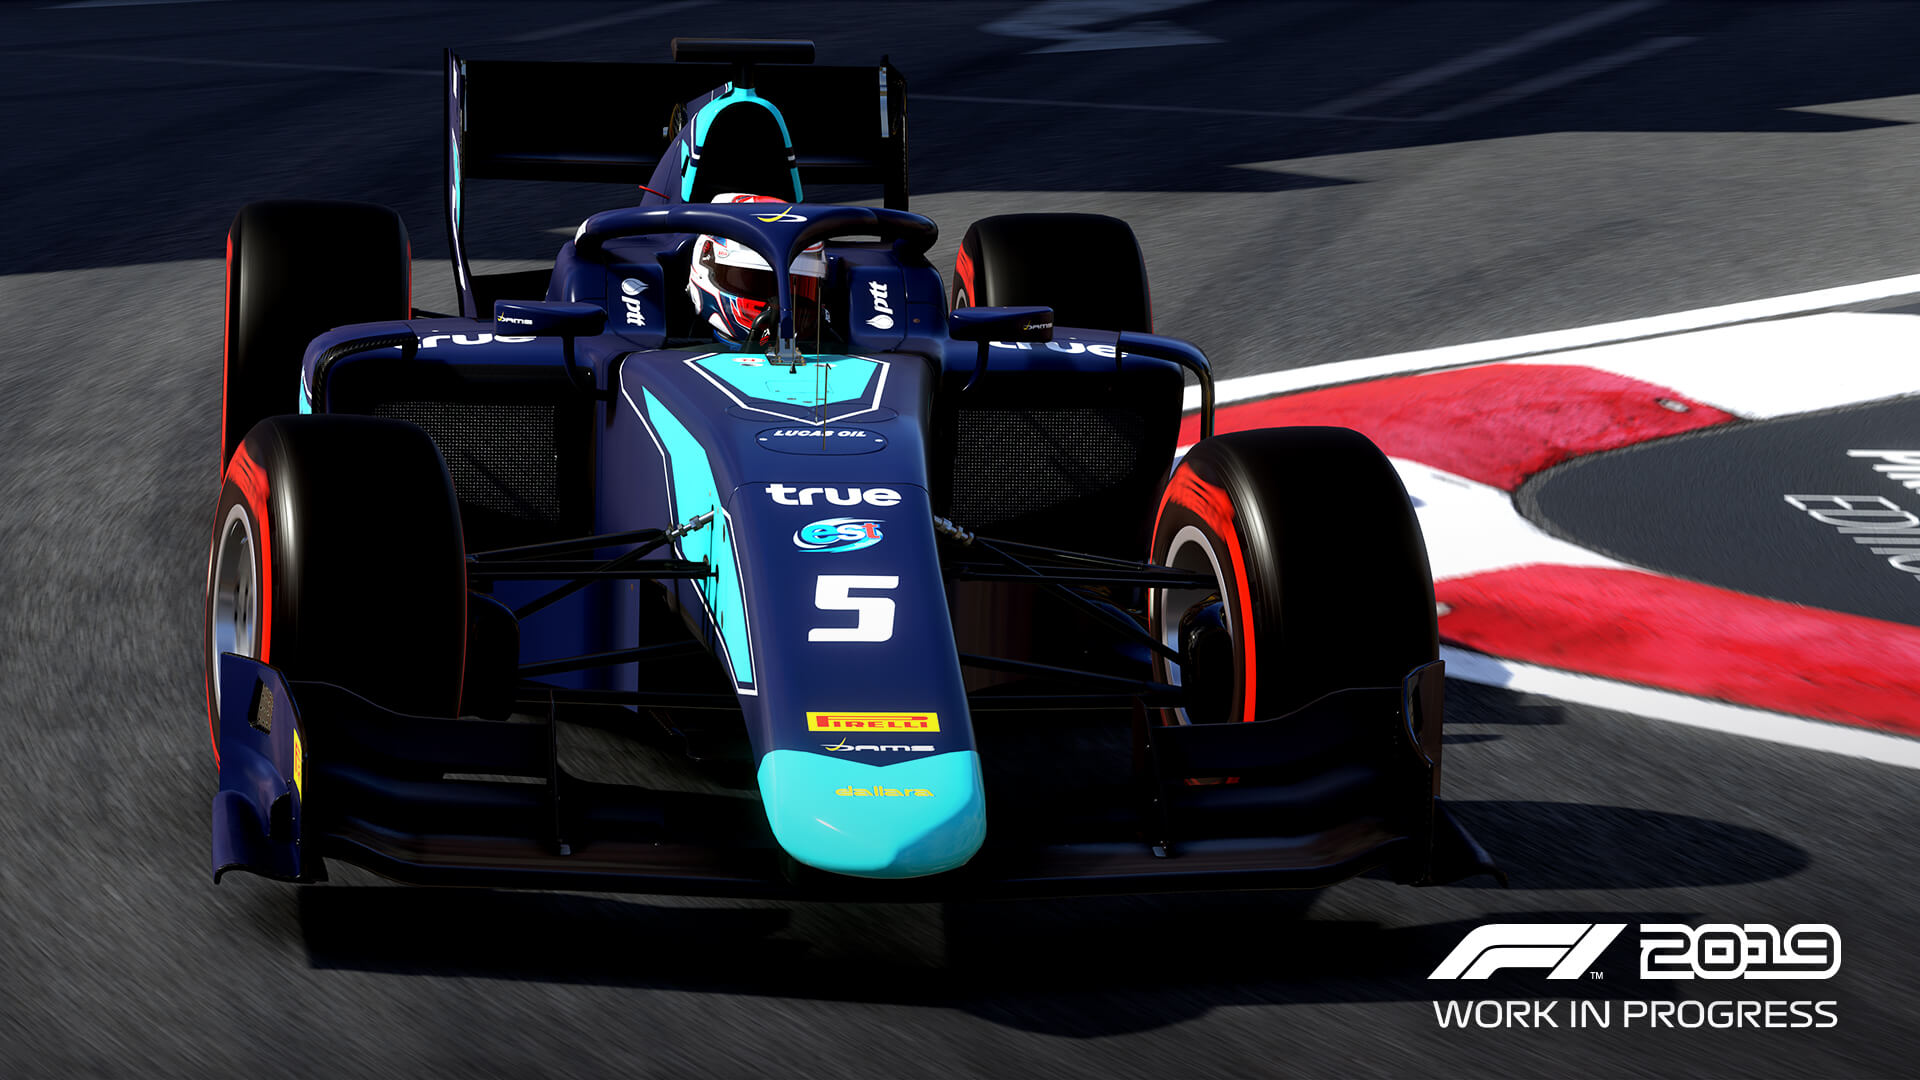 F1 2019 Includes